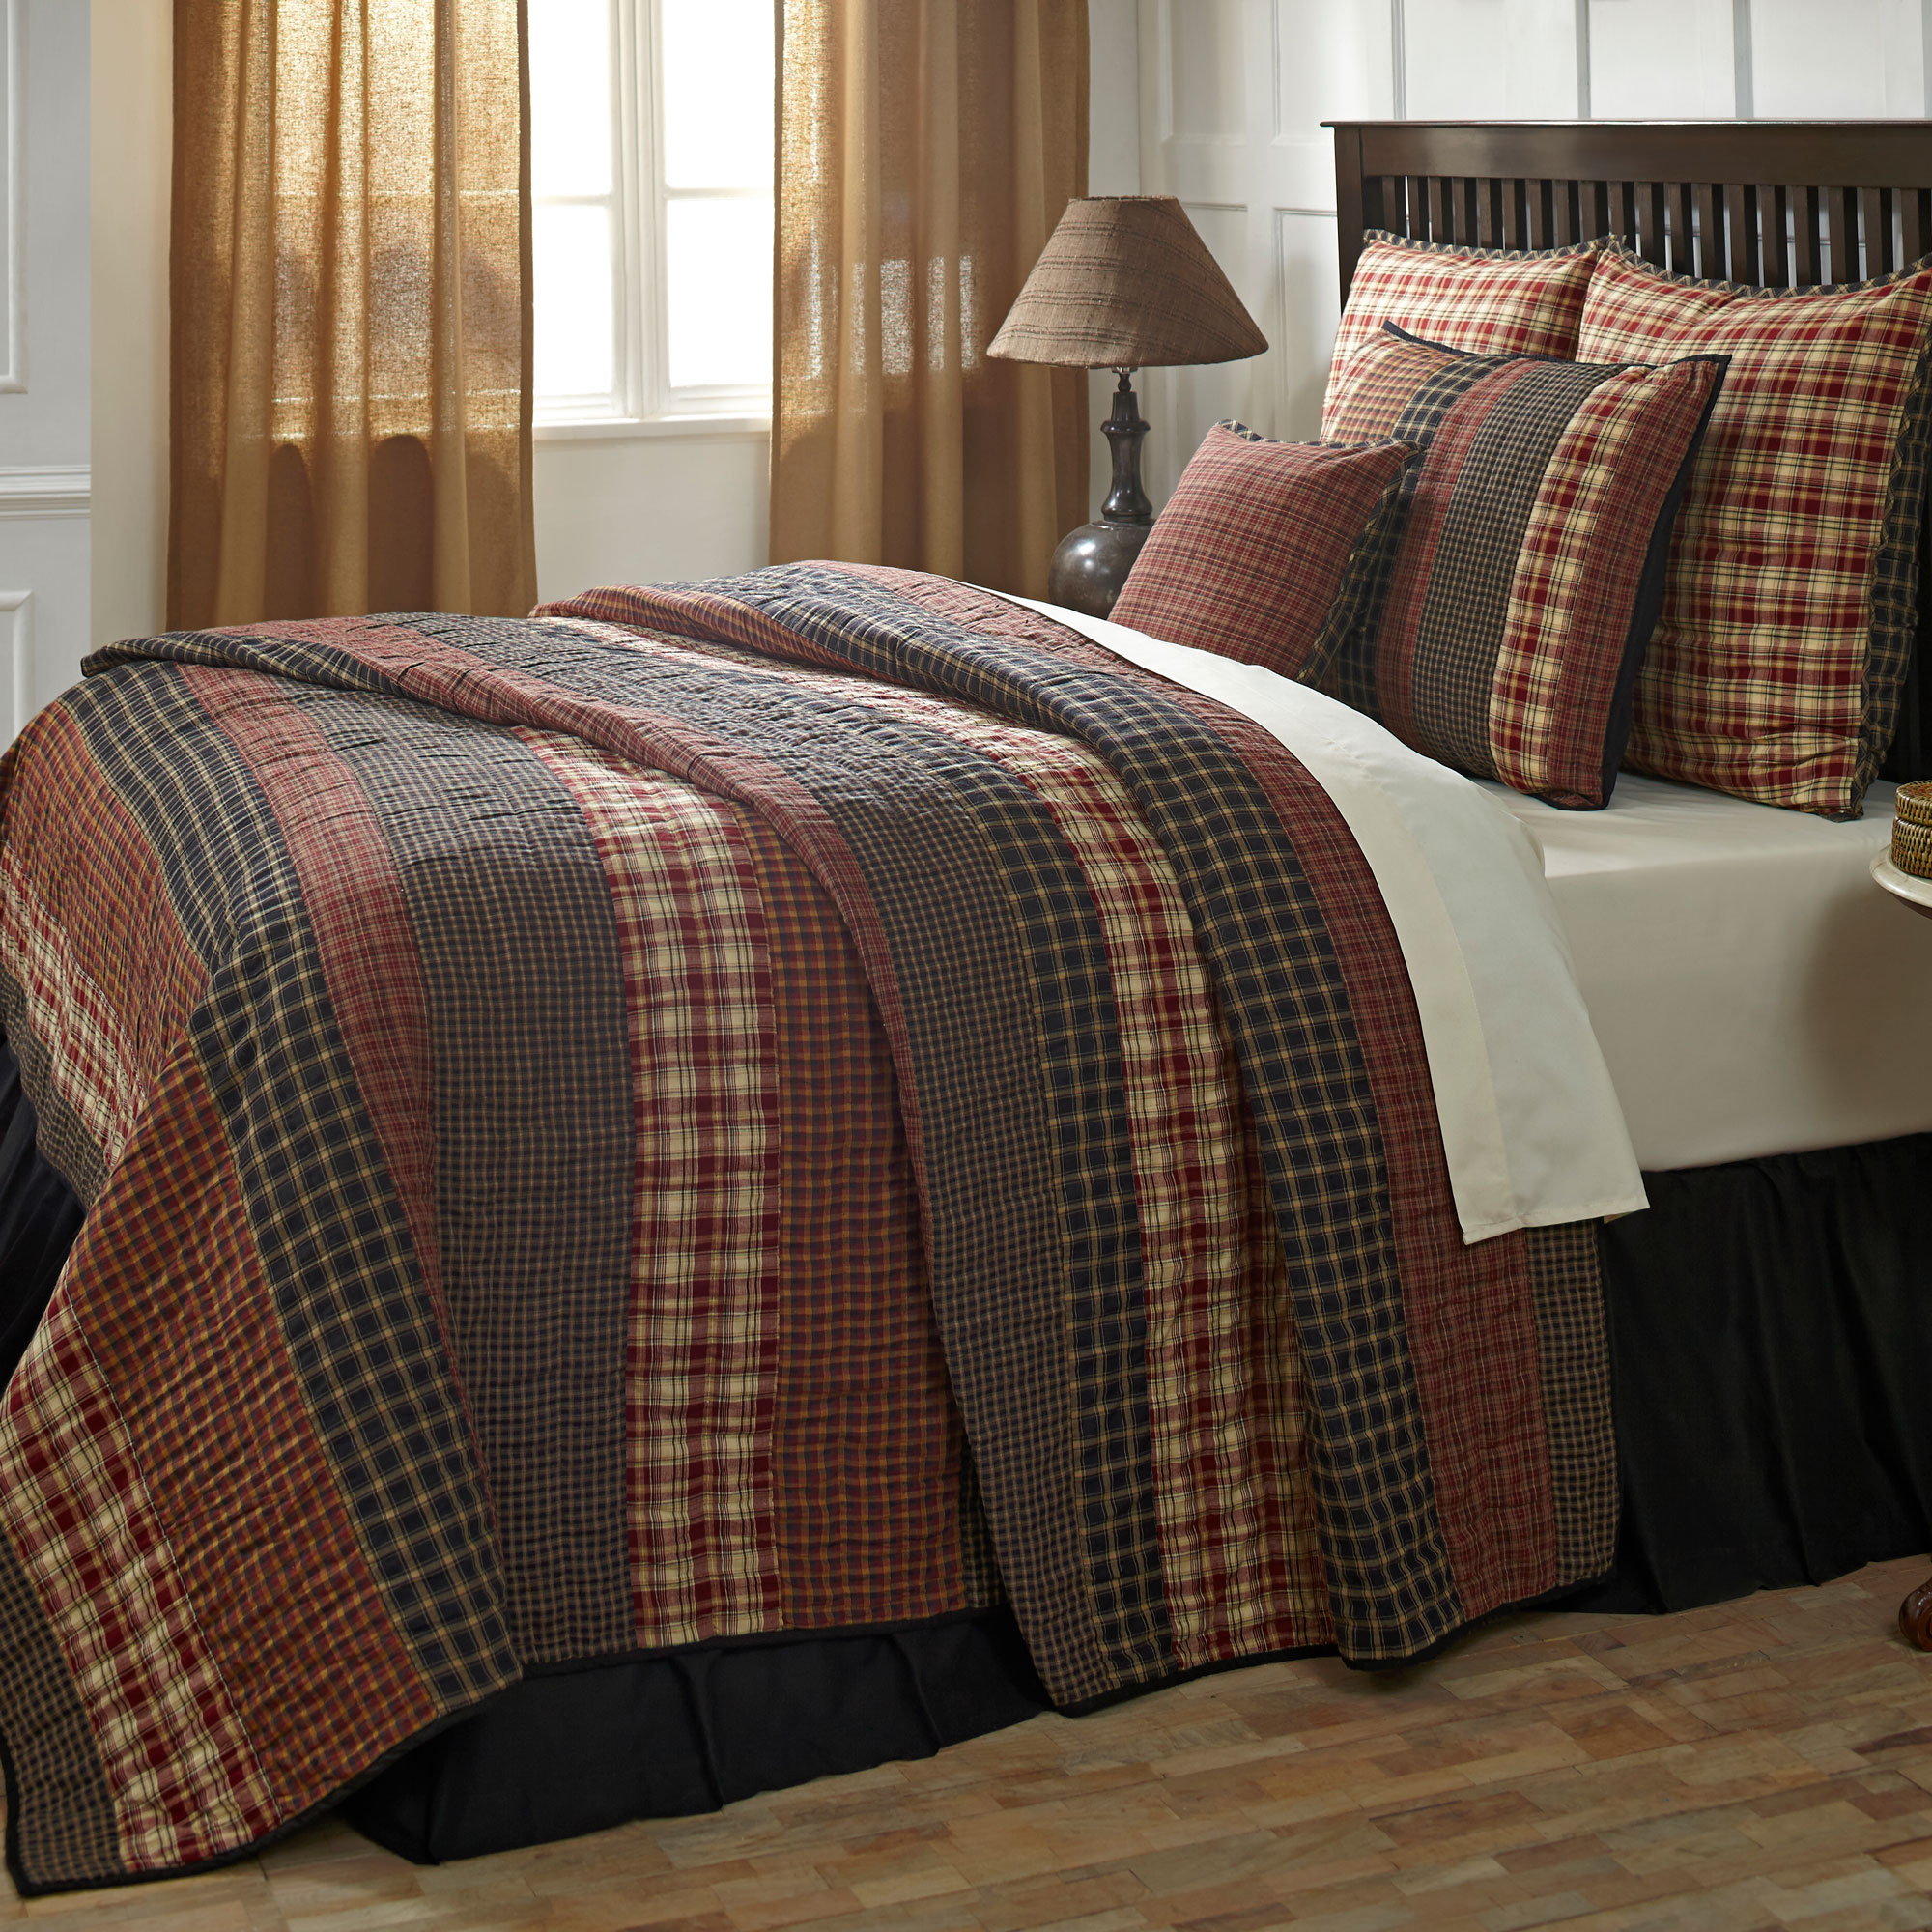 Victorian Heart Beckham 3 Piece Country Quilt Set